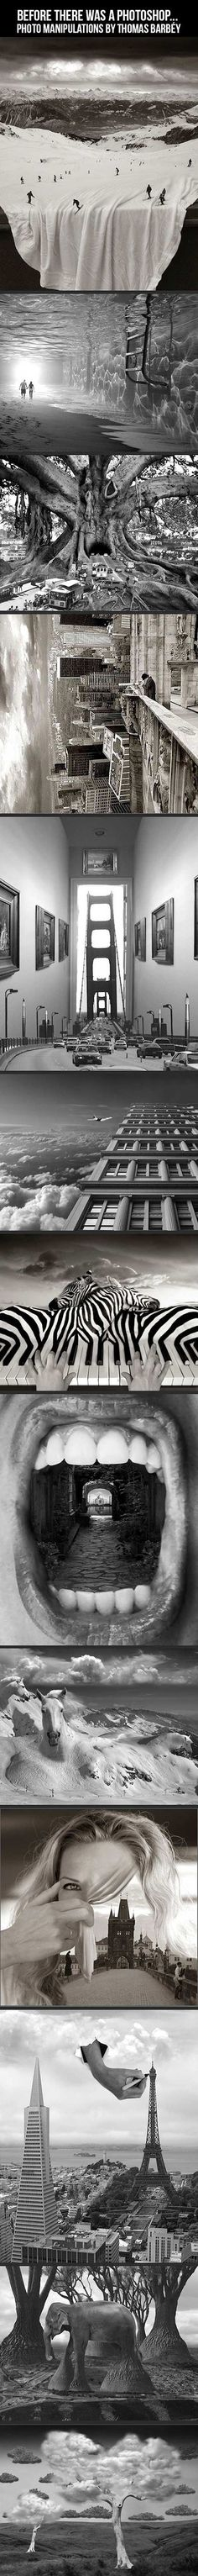 """""""Shopped!"""", is the constant cry of internet's sceptic and avid web browser. But after seeing Thomas Barbéy's works many sceptics are pleased to say """"'Shopped"""". Barbéy's surrealistic manipulations are not only works of retouching and airbrushing – he also sticks the negatives together, photographs them, uses other techniques to reach the concept vision he had in his mind first – but few are able to resist the gripping illusion."""